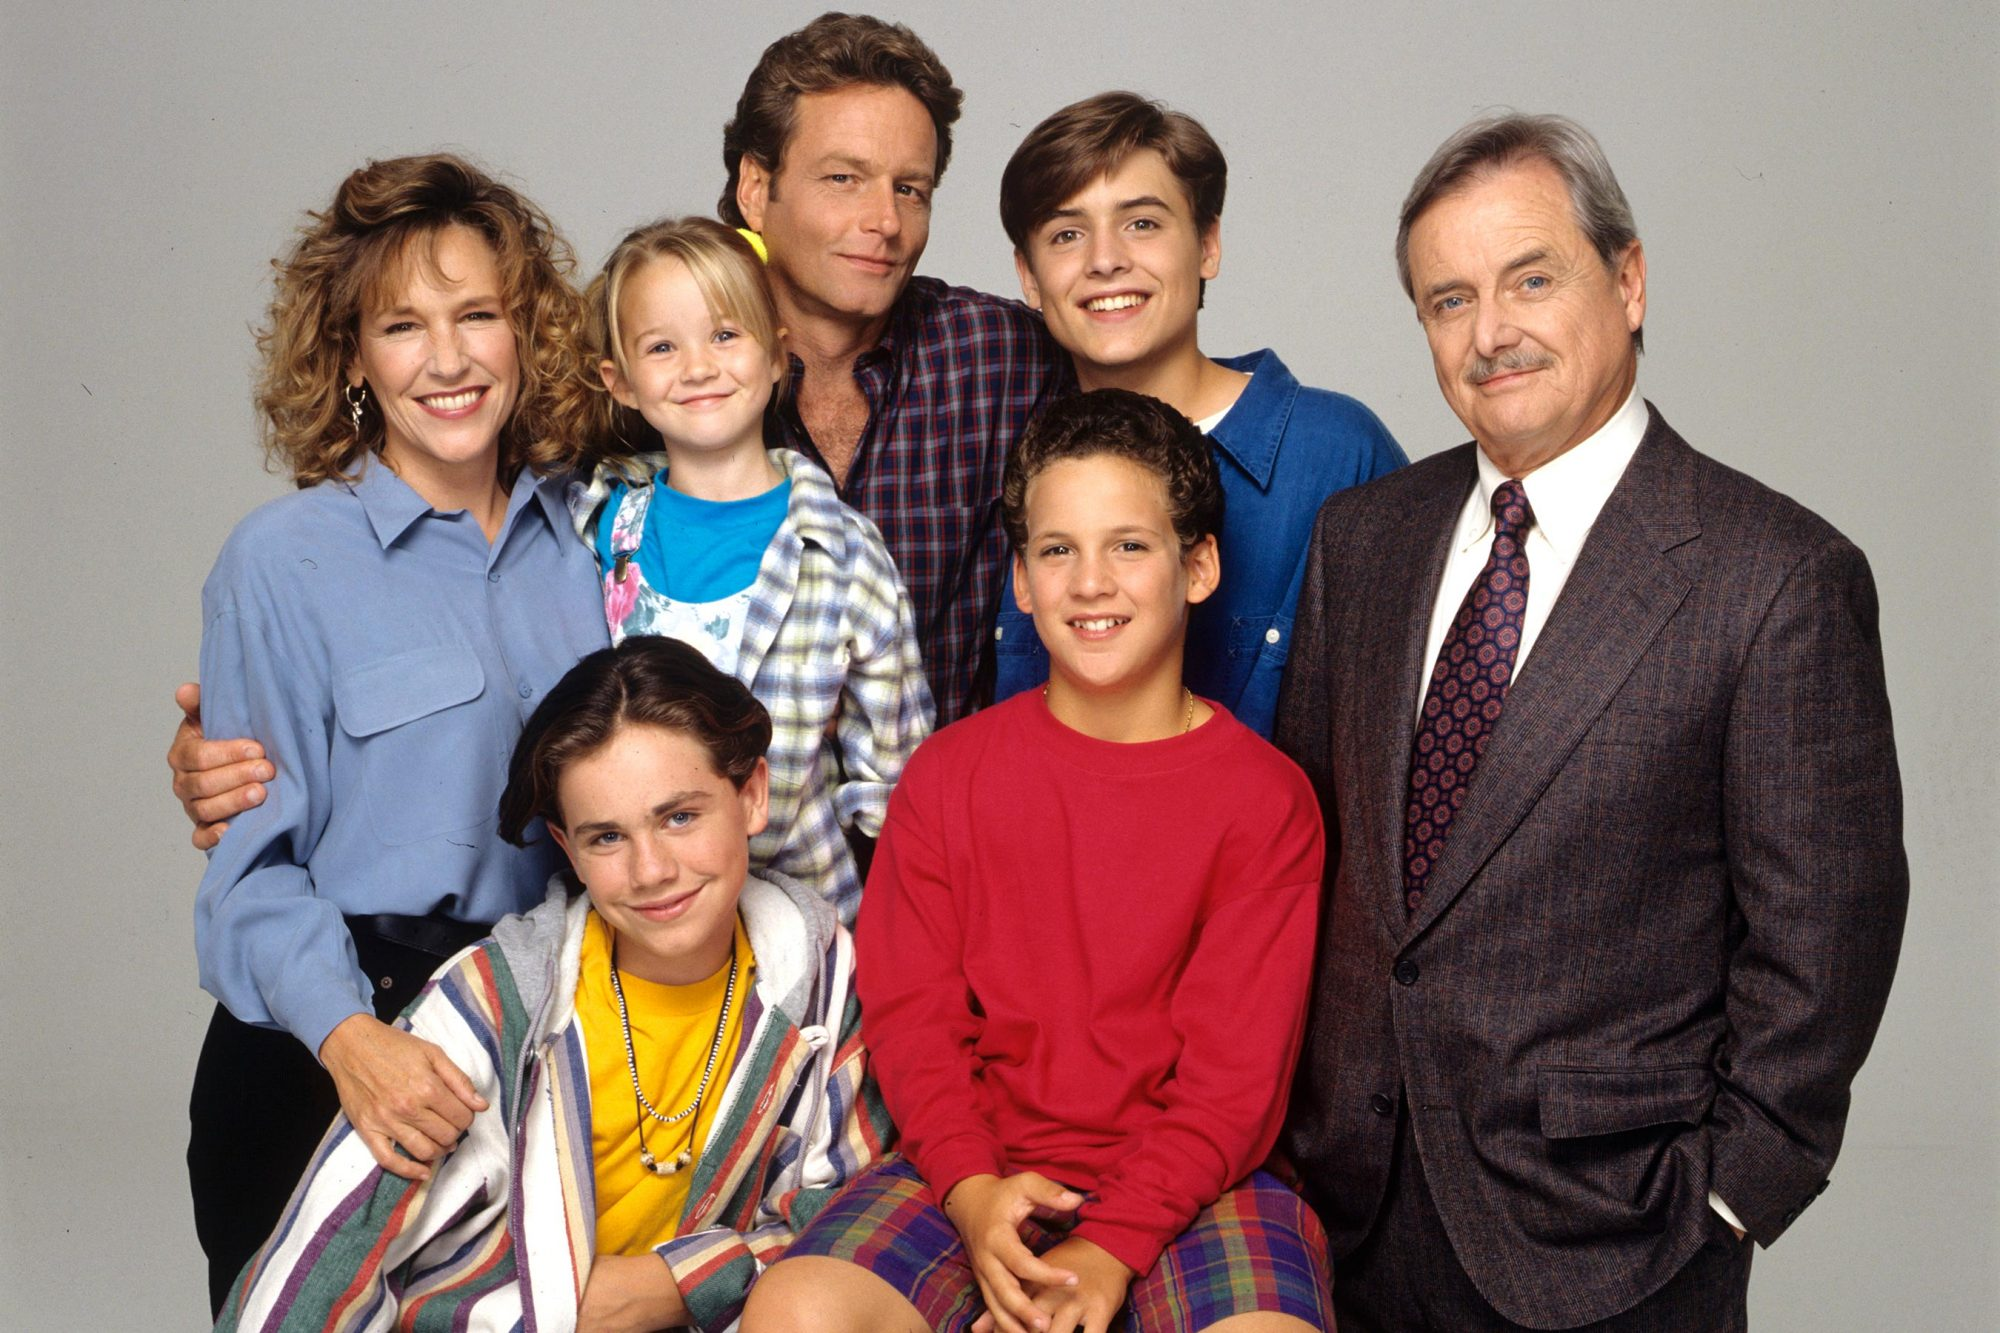 L-R: BETSY RANDLE;RIDER STRONG;LILY NICKSAY;WILLIAM RUSS;BEN SAVAGE;WILL FRIEDLE;WILLIAM DANIELS